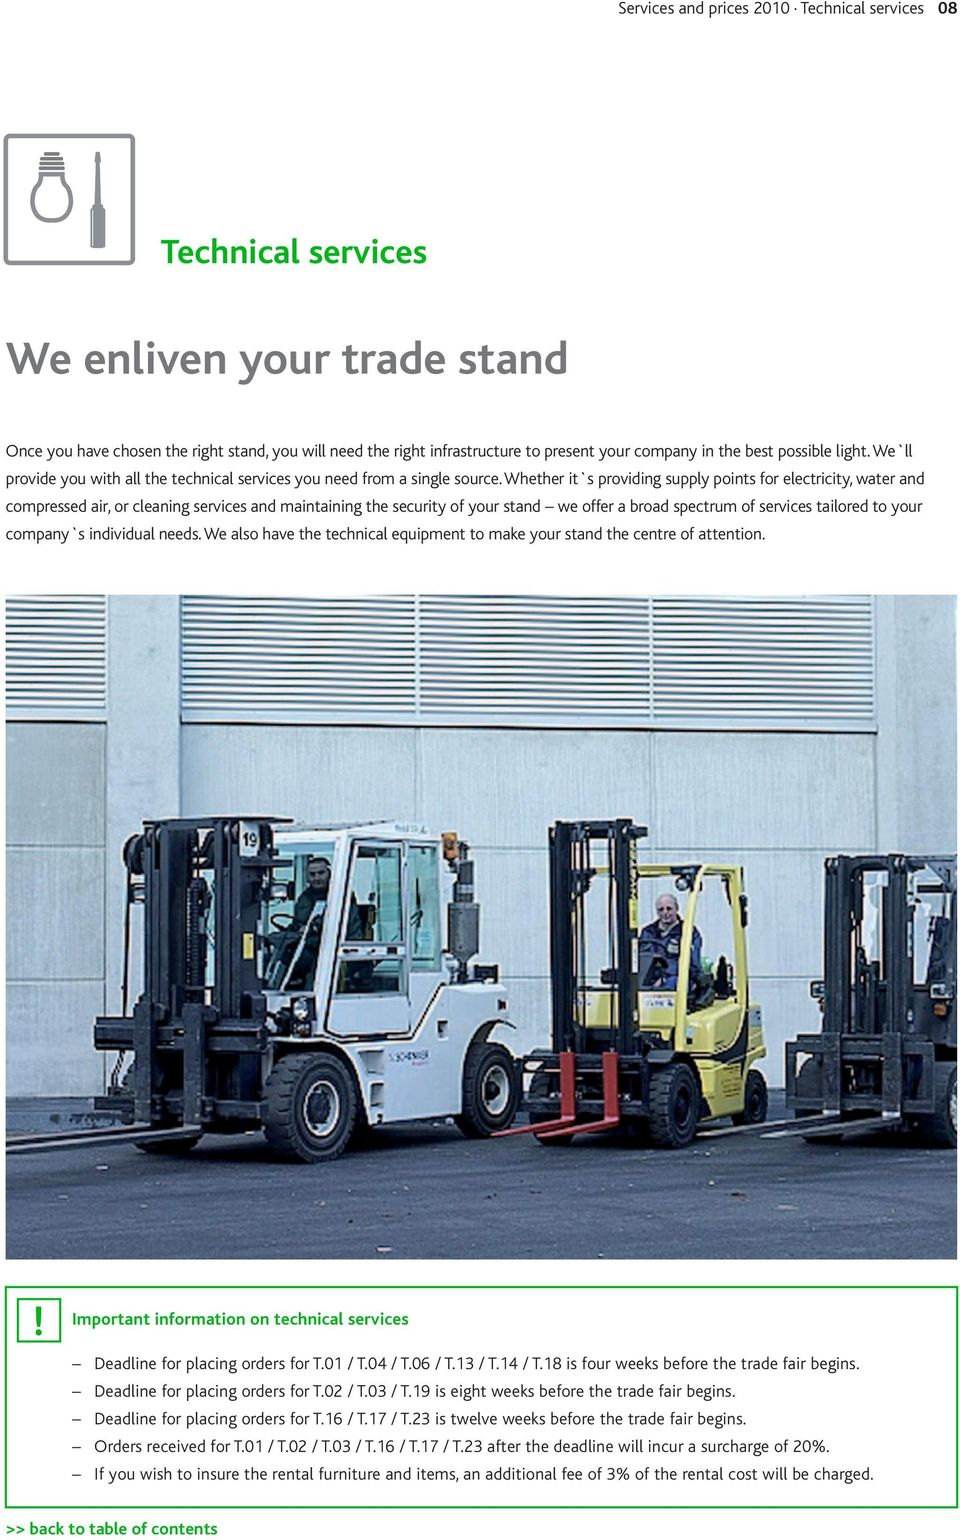 Whether it`s providing supply points for electricity, water and compressed air, or cleaning services and maintaining the security of your stand we offer a broad spectrum of services tailored to your